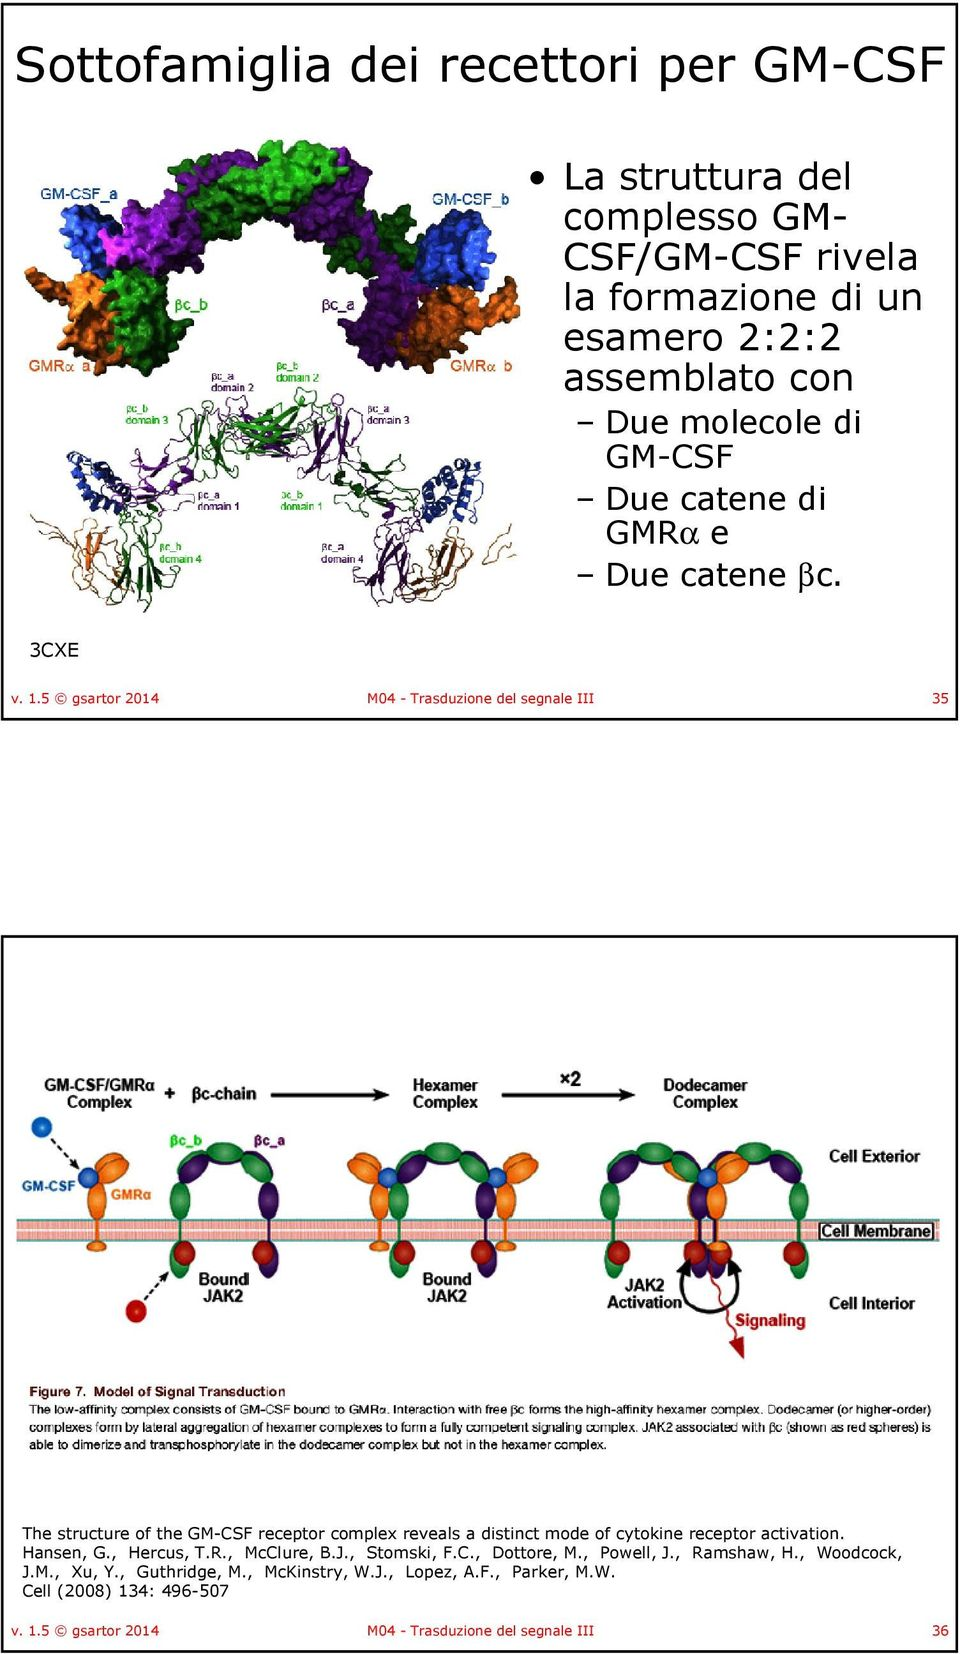 5 gsartor 2014 M04 - Trasduzione del segnale III 35 The structure of the GM-CSF receptor complex reveals a distinct mode of cytokine receptor activation.